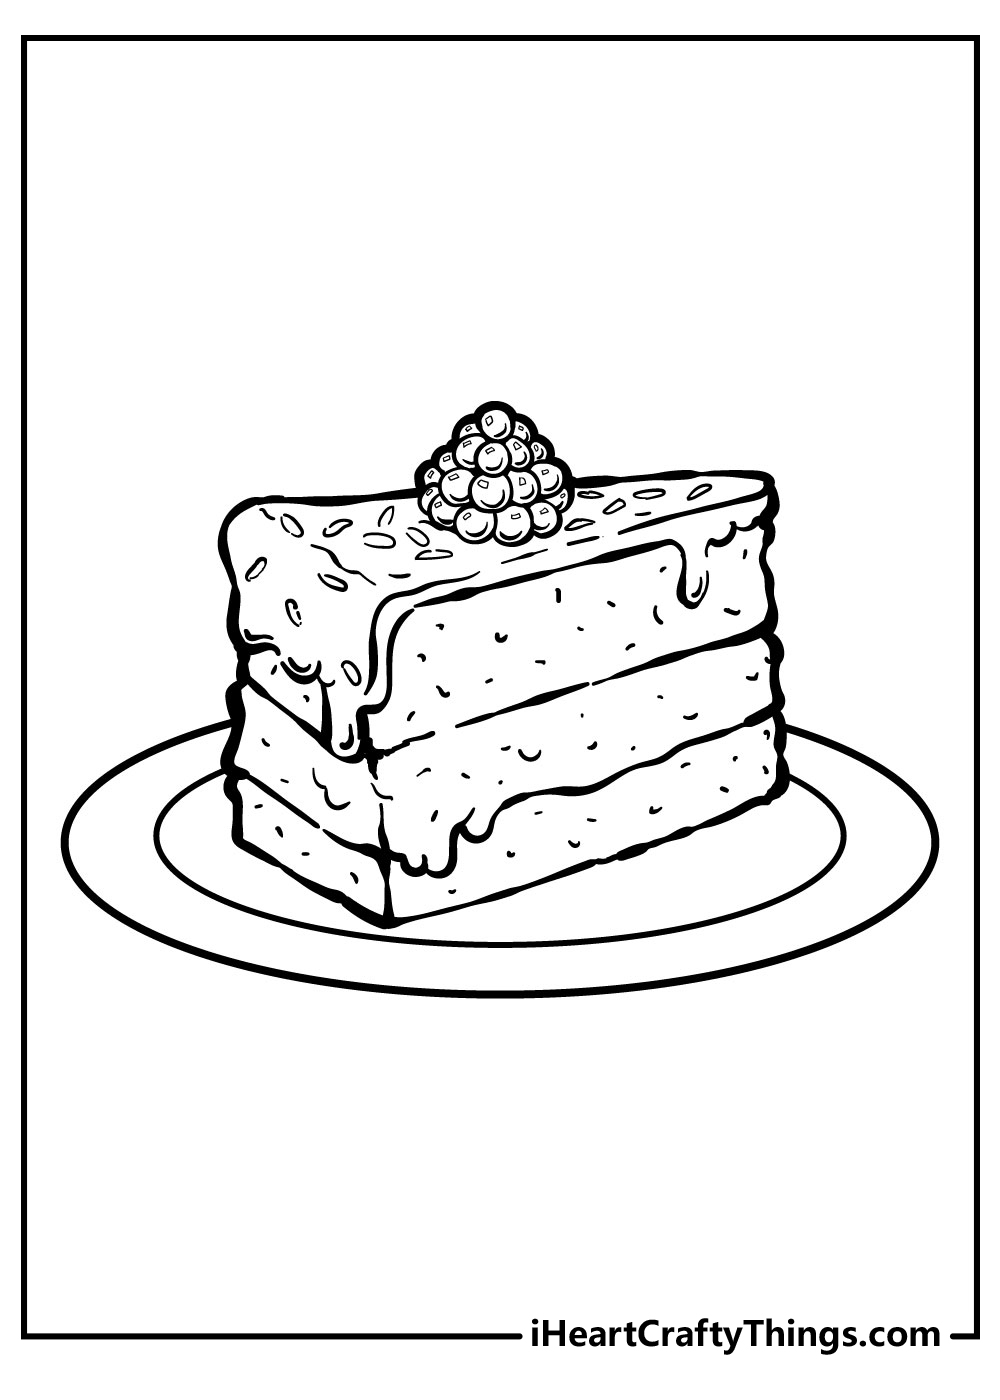 a cake slice coloring pages free download